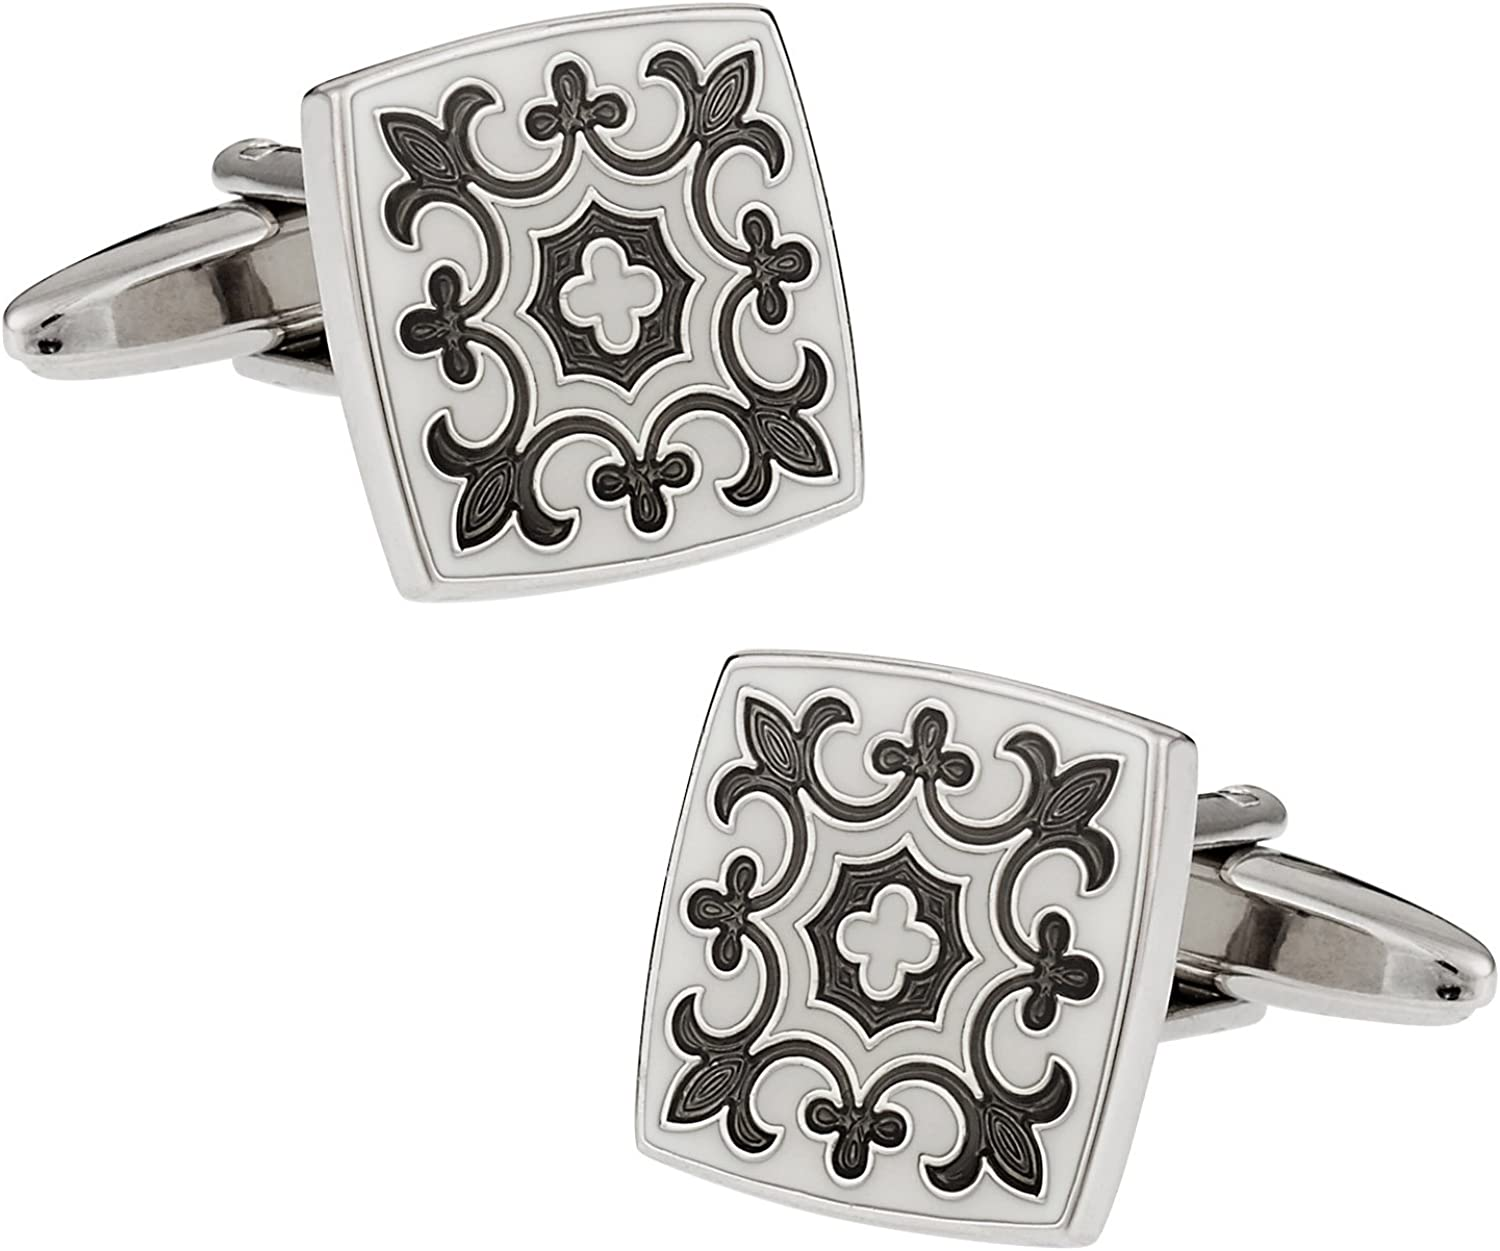 Cuff-Daddy Gray & White Fleur Di Lis Cufflinks with Presentation Box